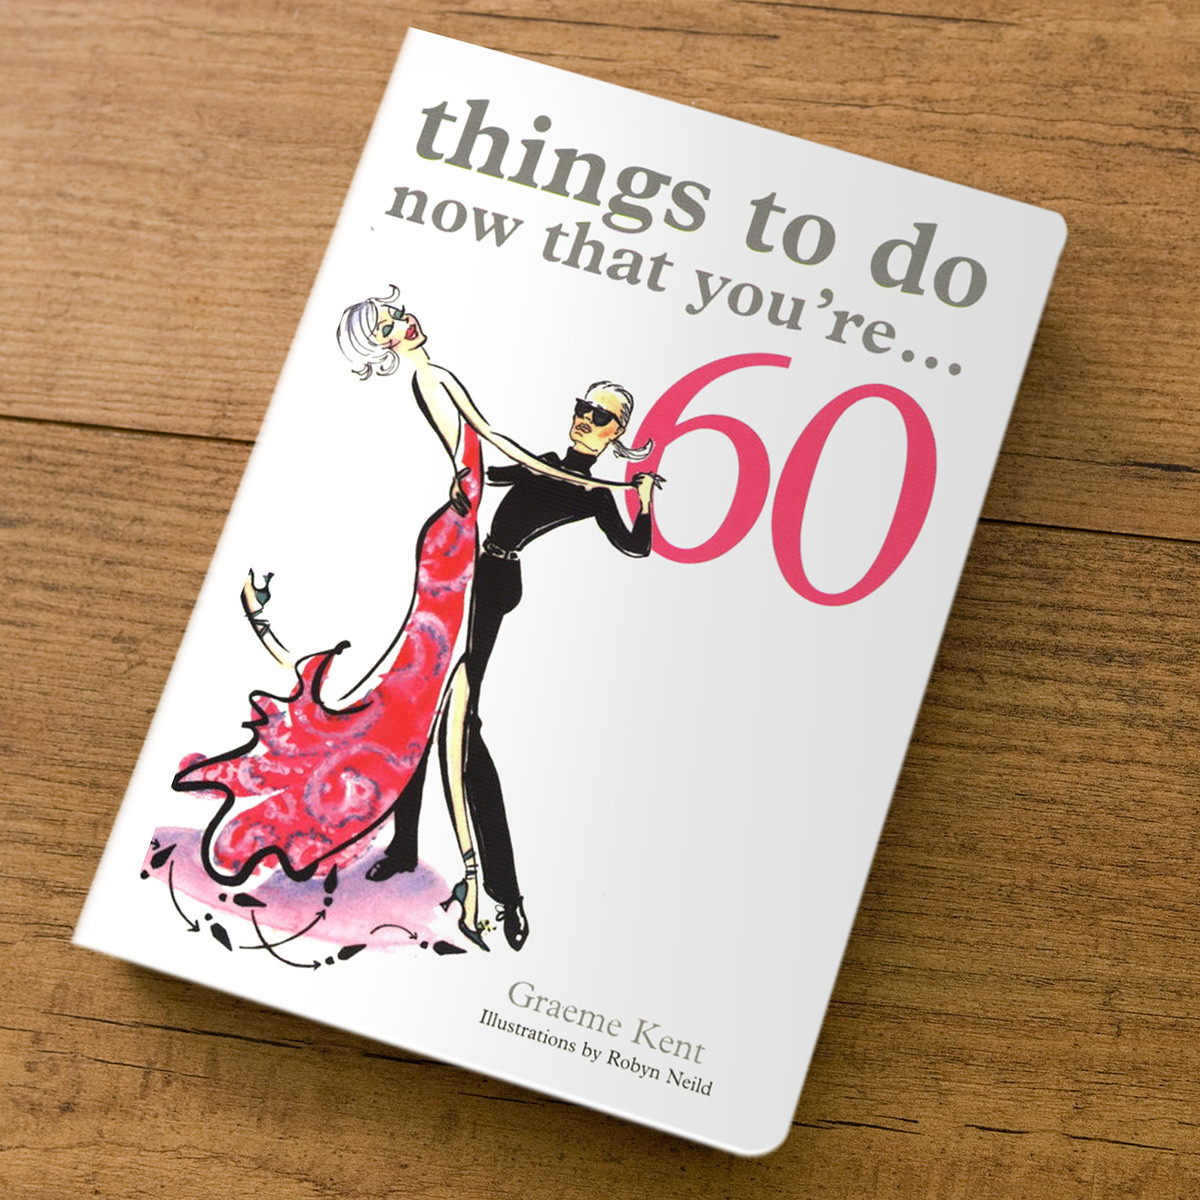 60Th Birthday Gift Ideas For.Women  Things To Do Now That You re 60 Gift Book 60th